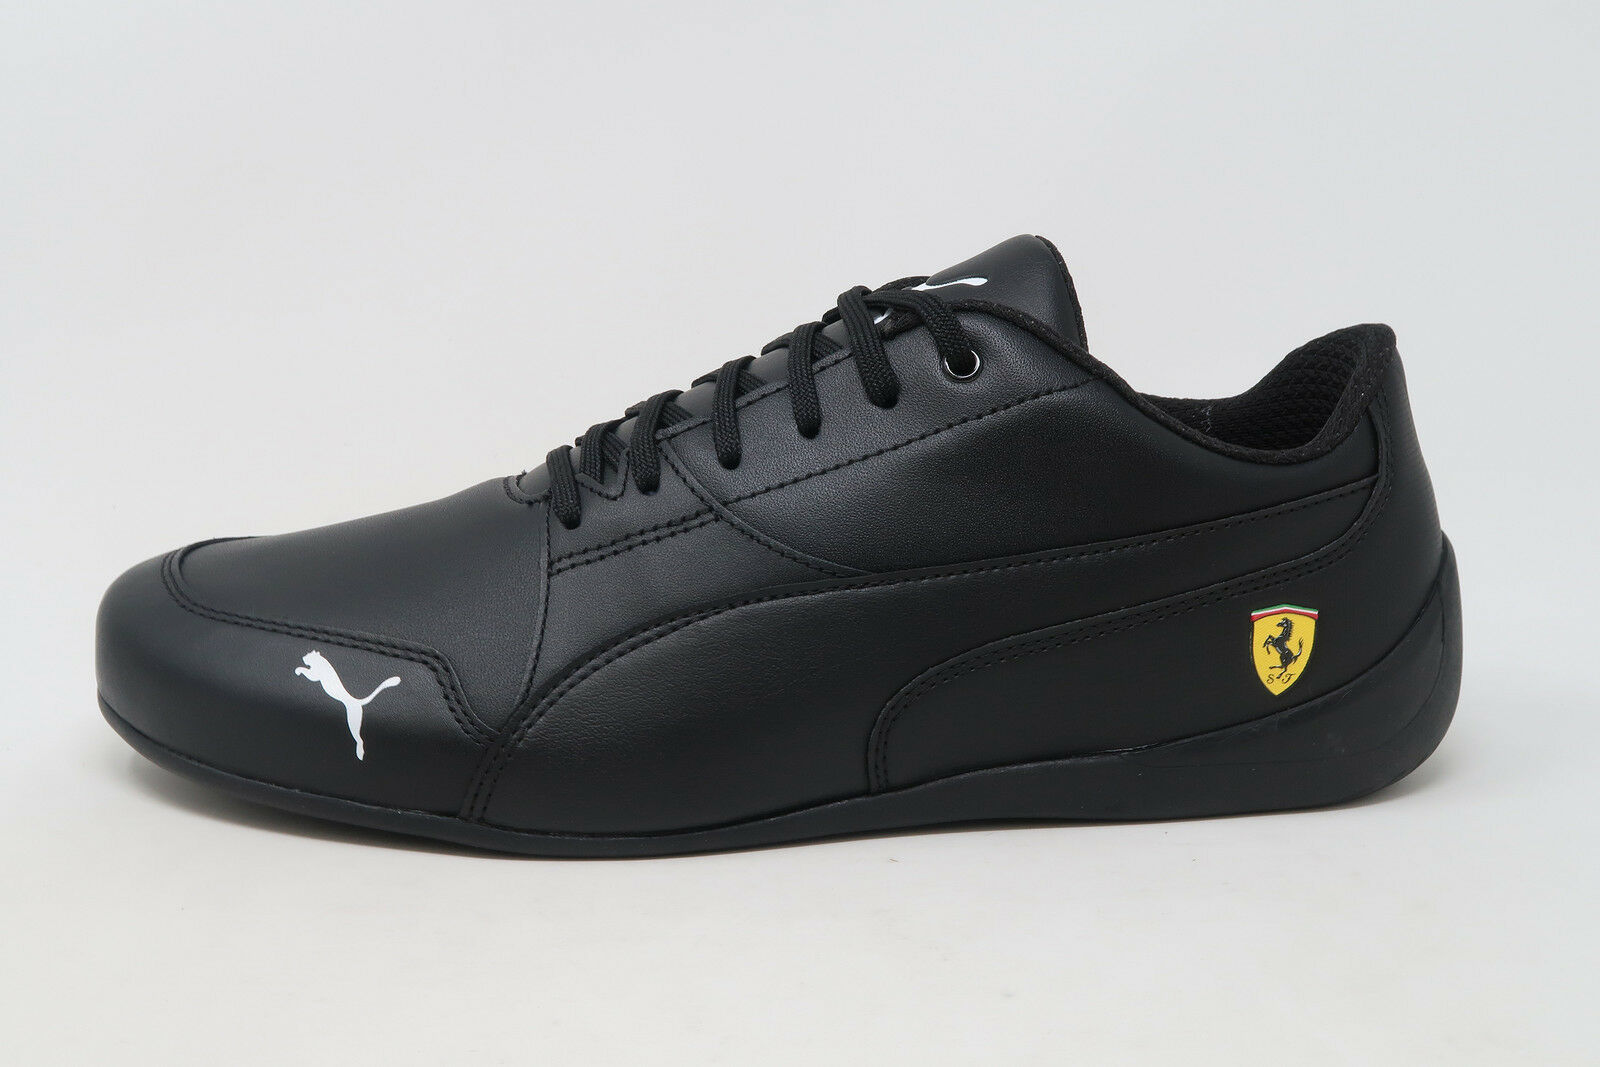 PUMA SF Ferrari Drift Cat 7 Black Leather Lace Up Sneakers Adult Men Shoes 1